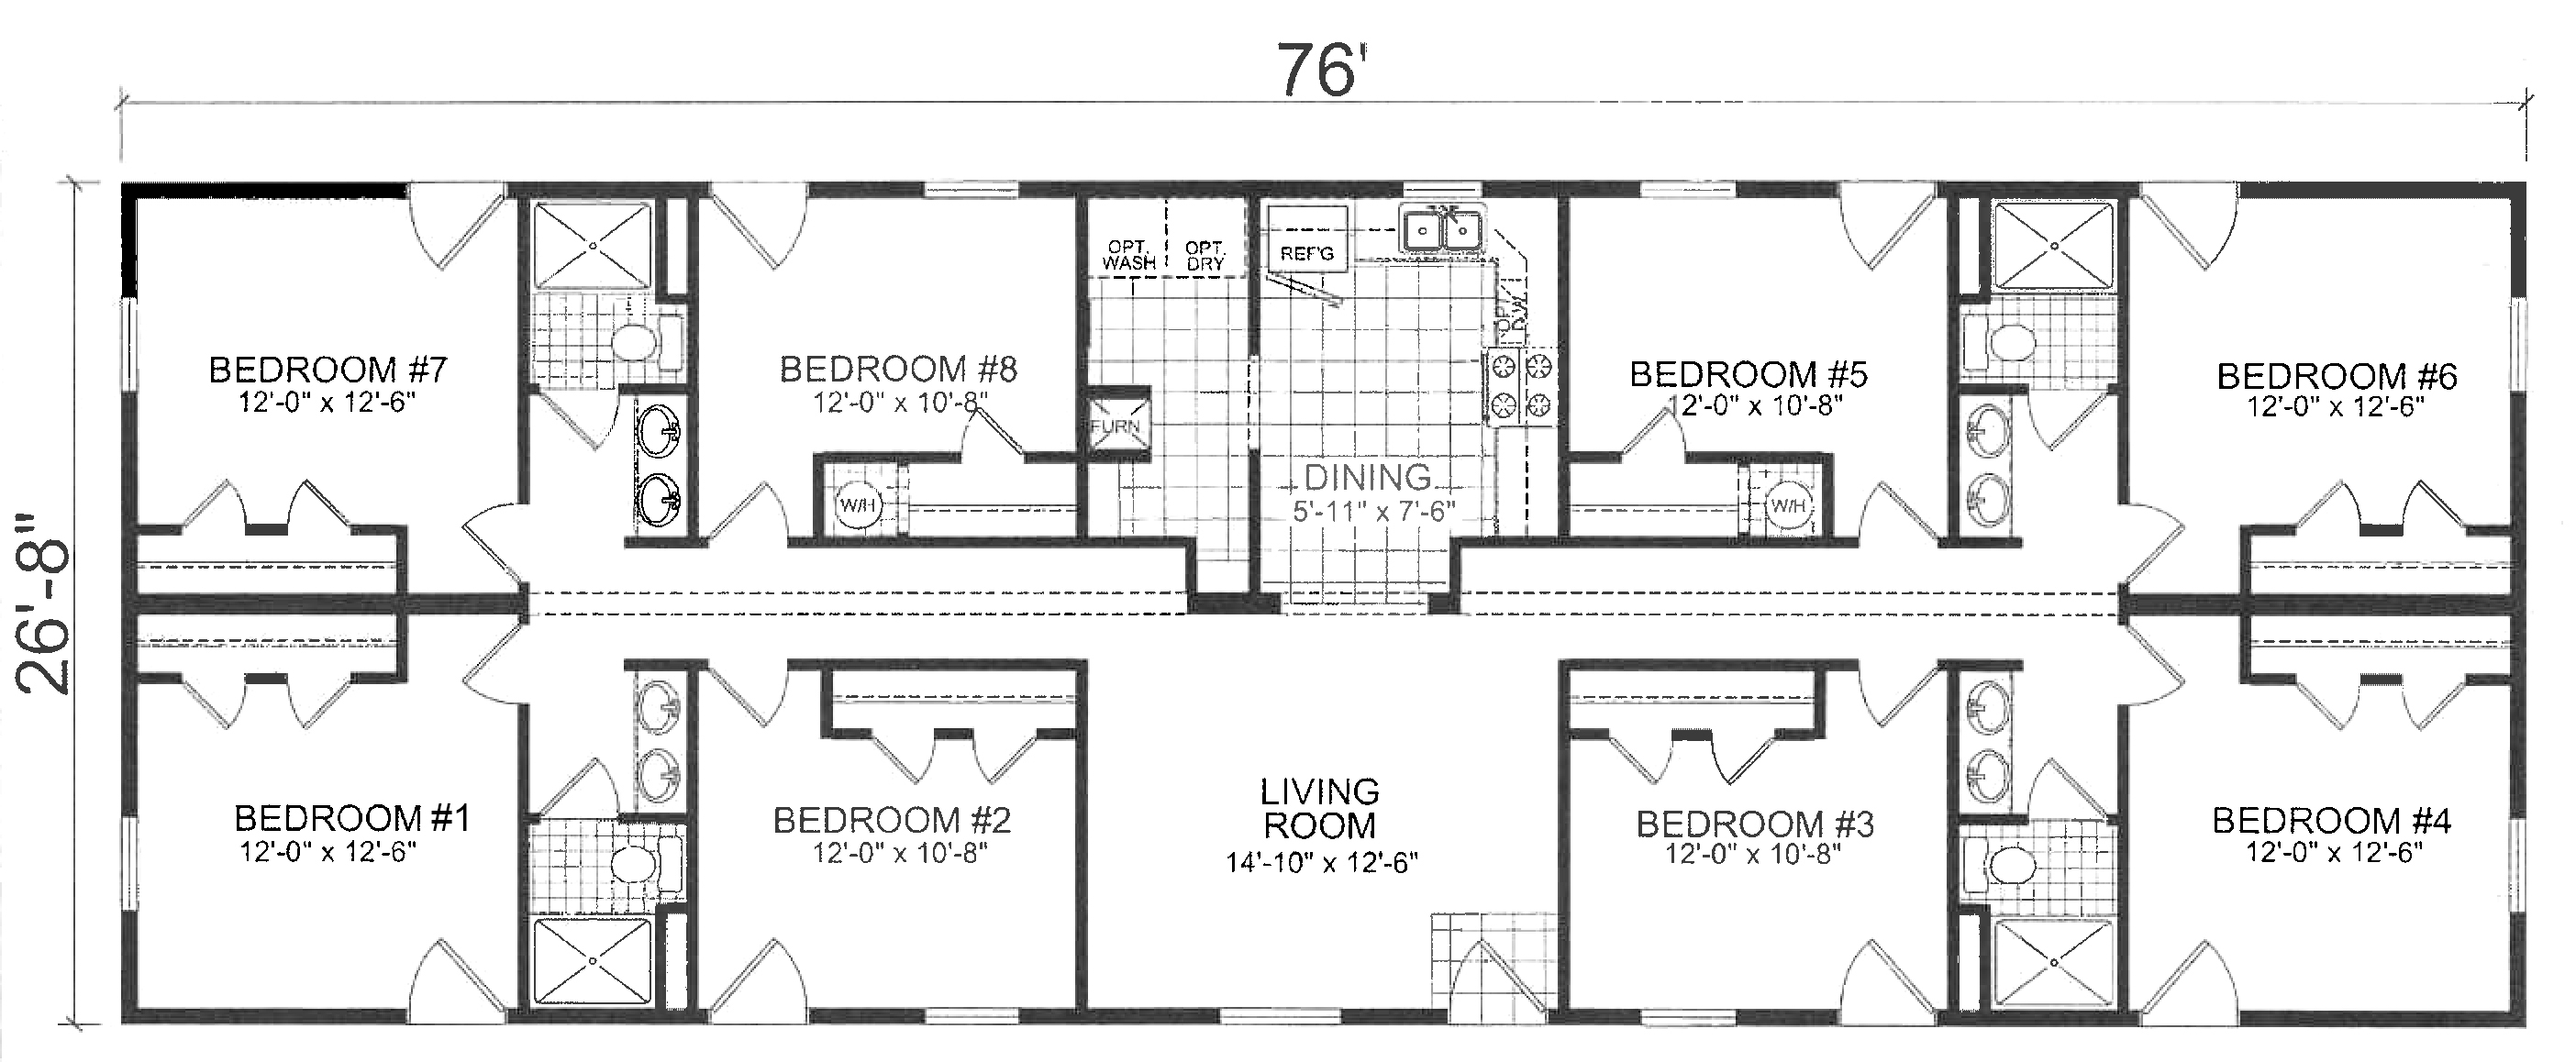 units and floorplan amber hills lodge nd workforce On lodge plans with 8 bedrooms